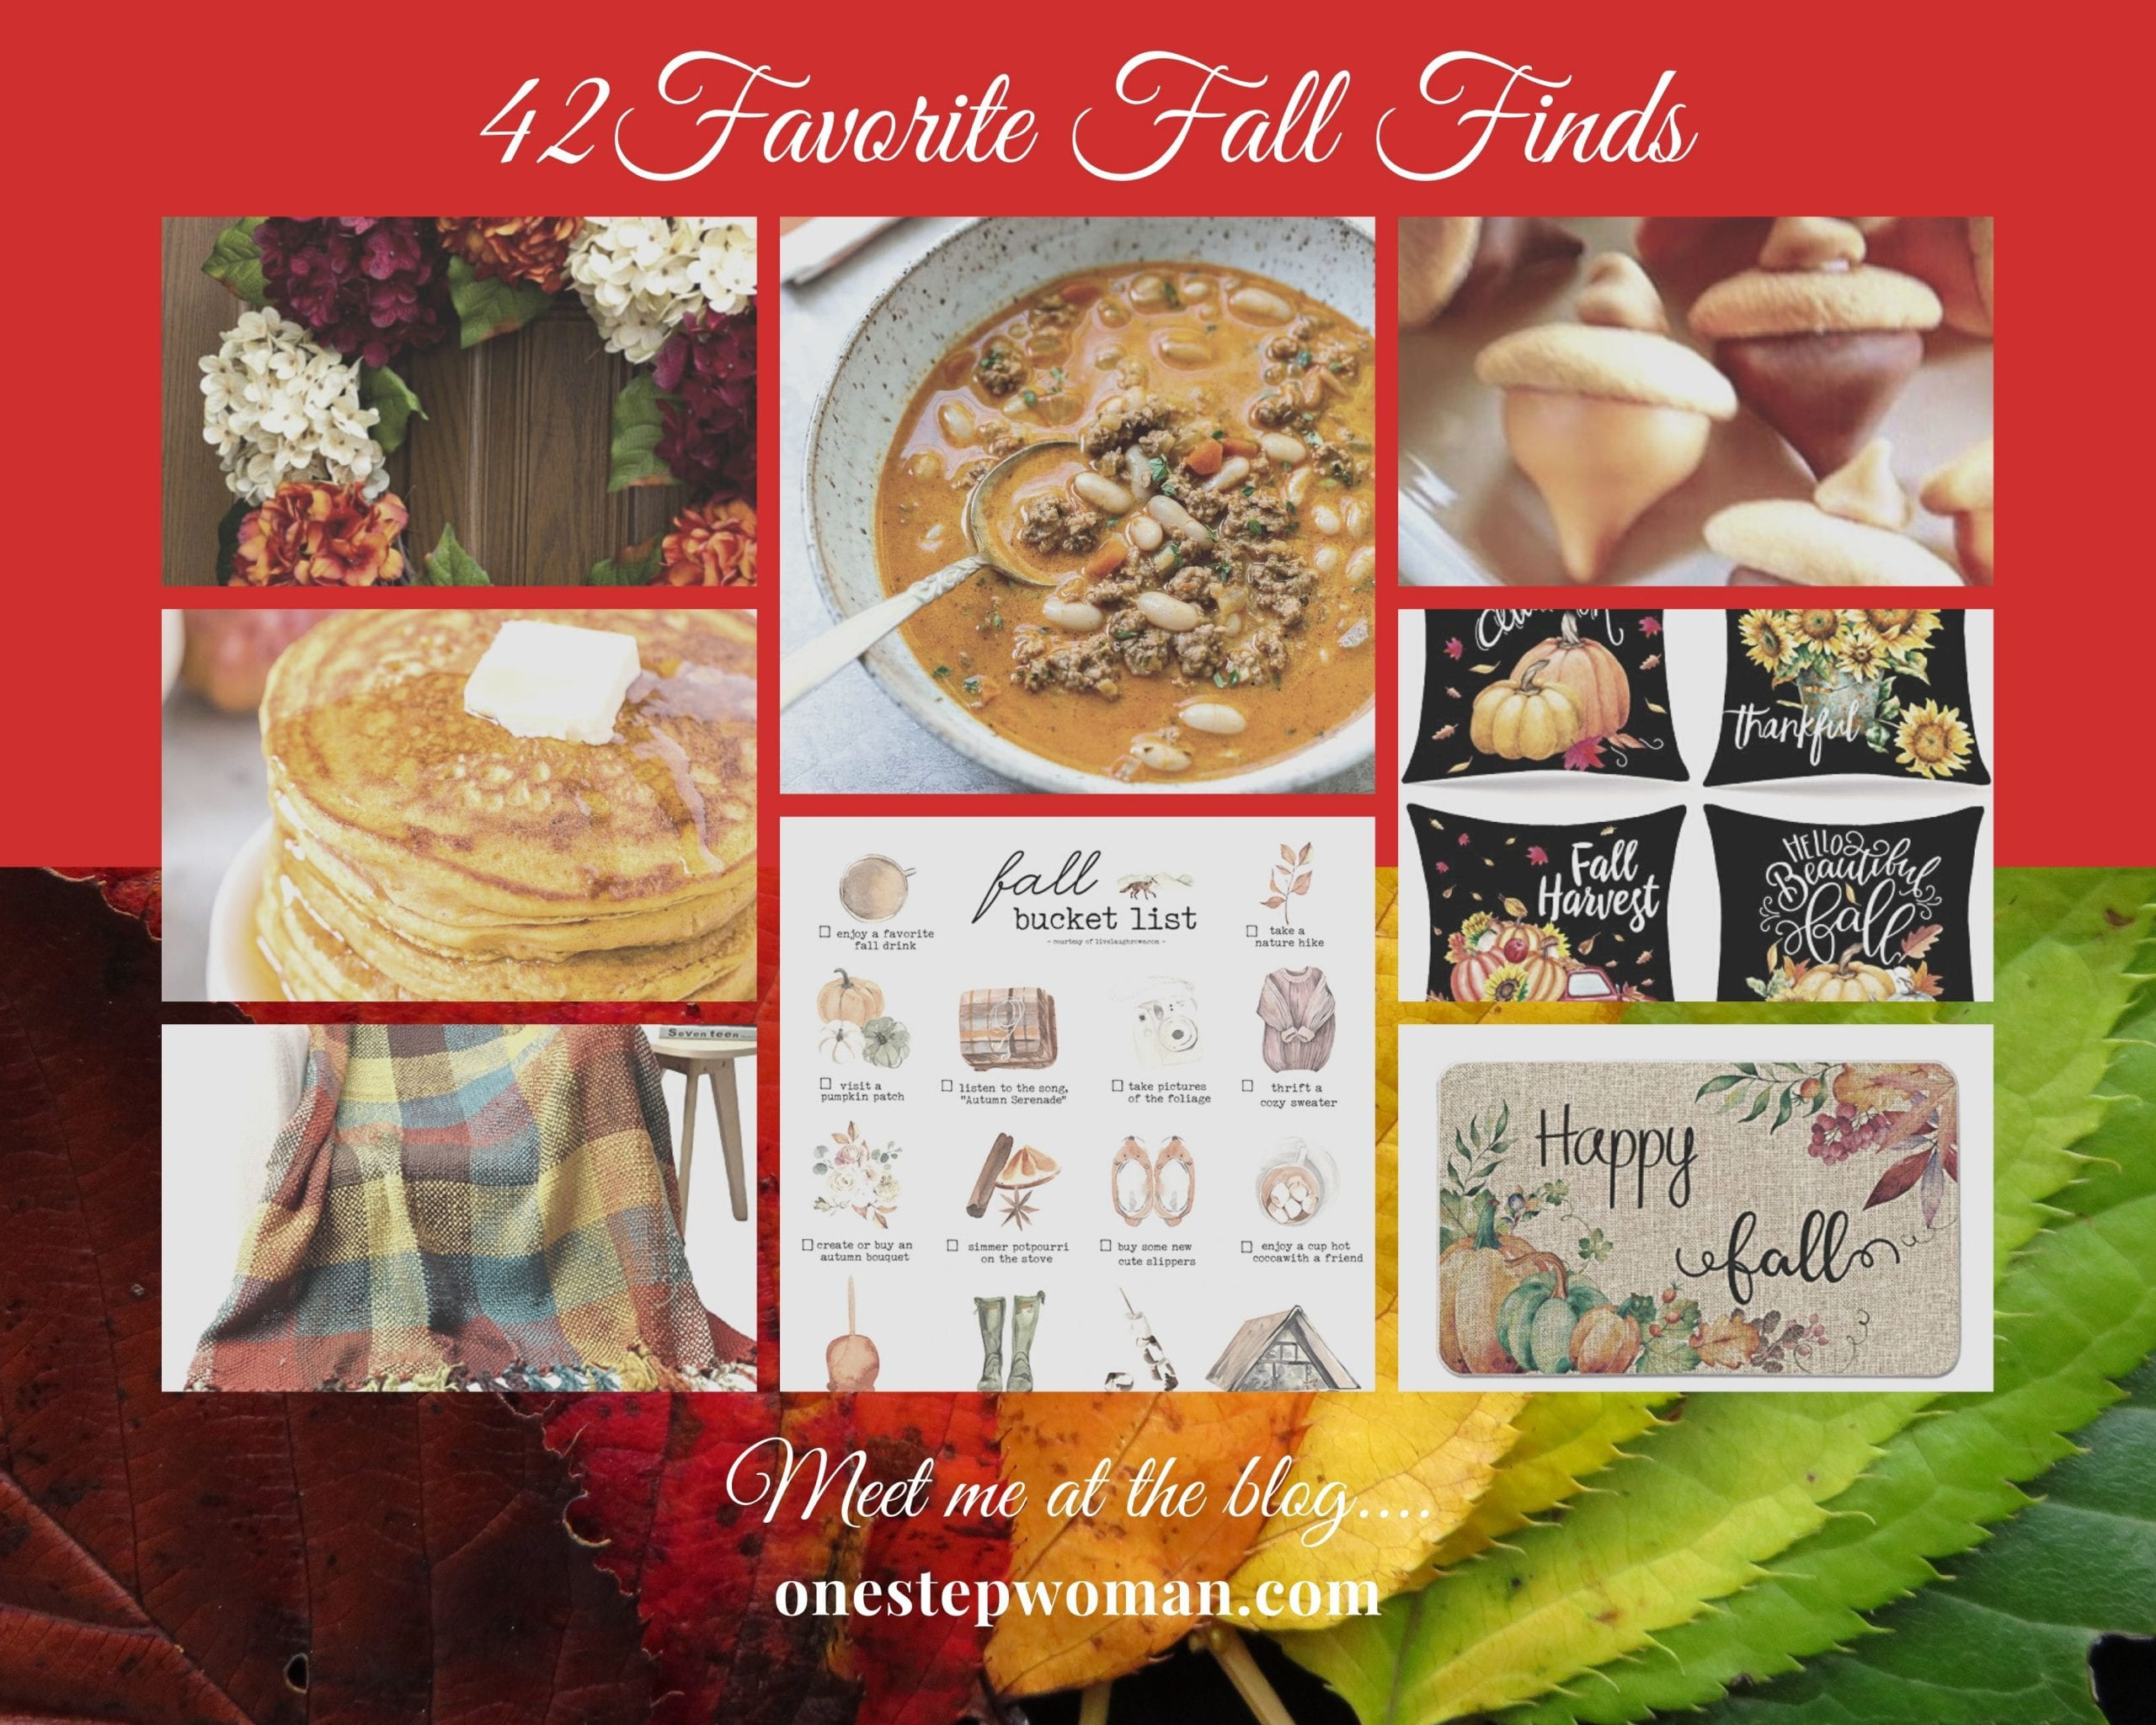 42 Favorite Fall Finds | One Step Woman